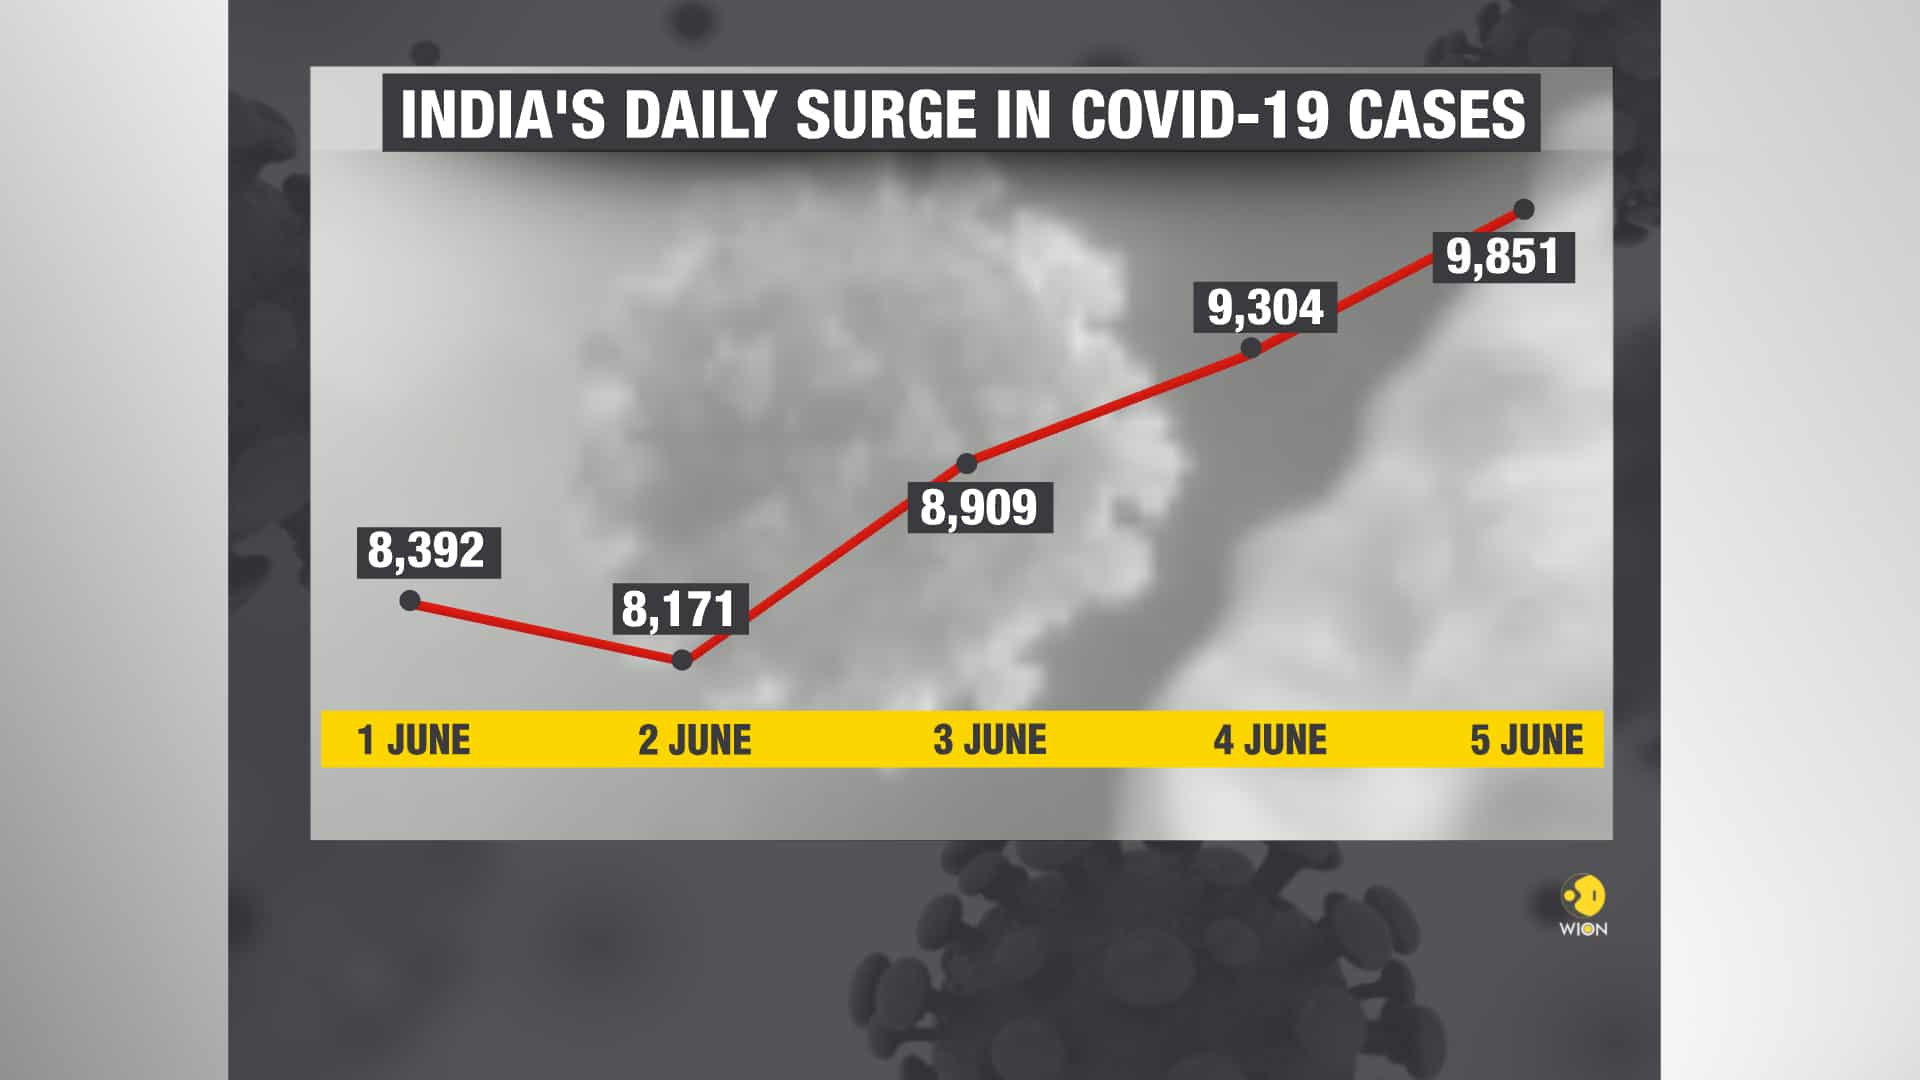 India replaces Italy to become 6th worst-hit country by coronavirus pandemic